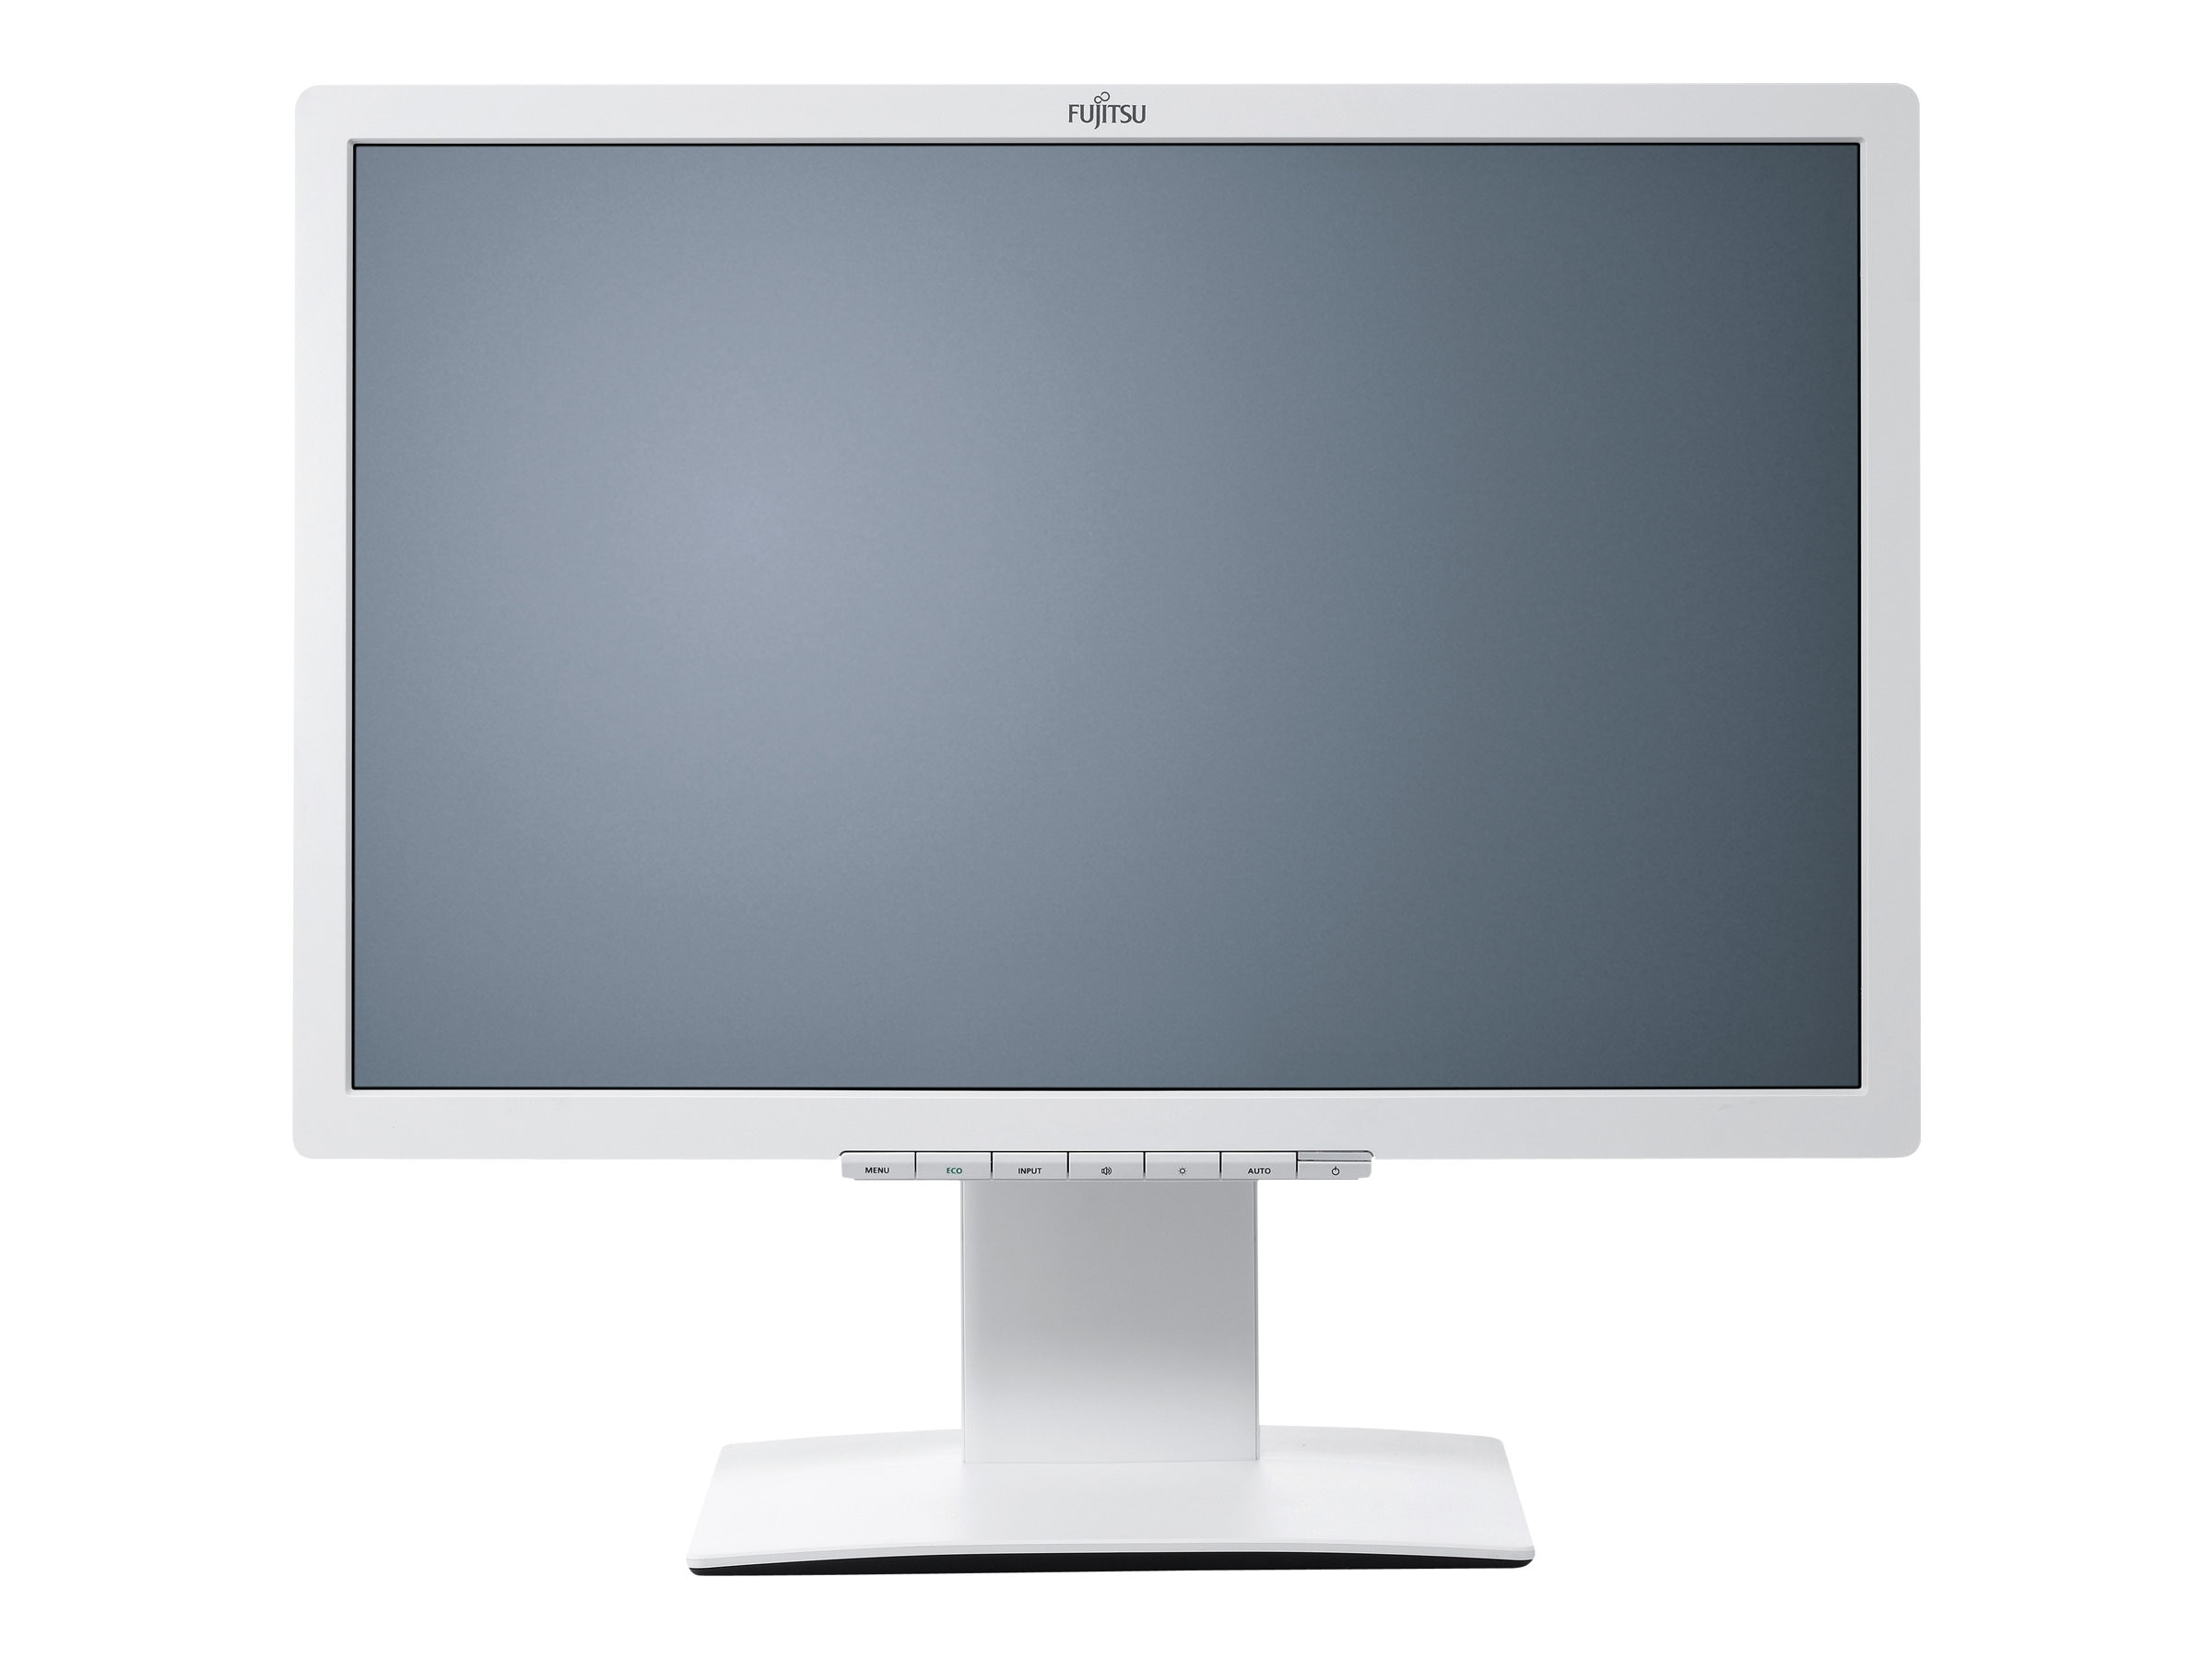 Fujitsu 22 B22W-7 LED-LCD Display, White